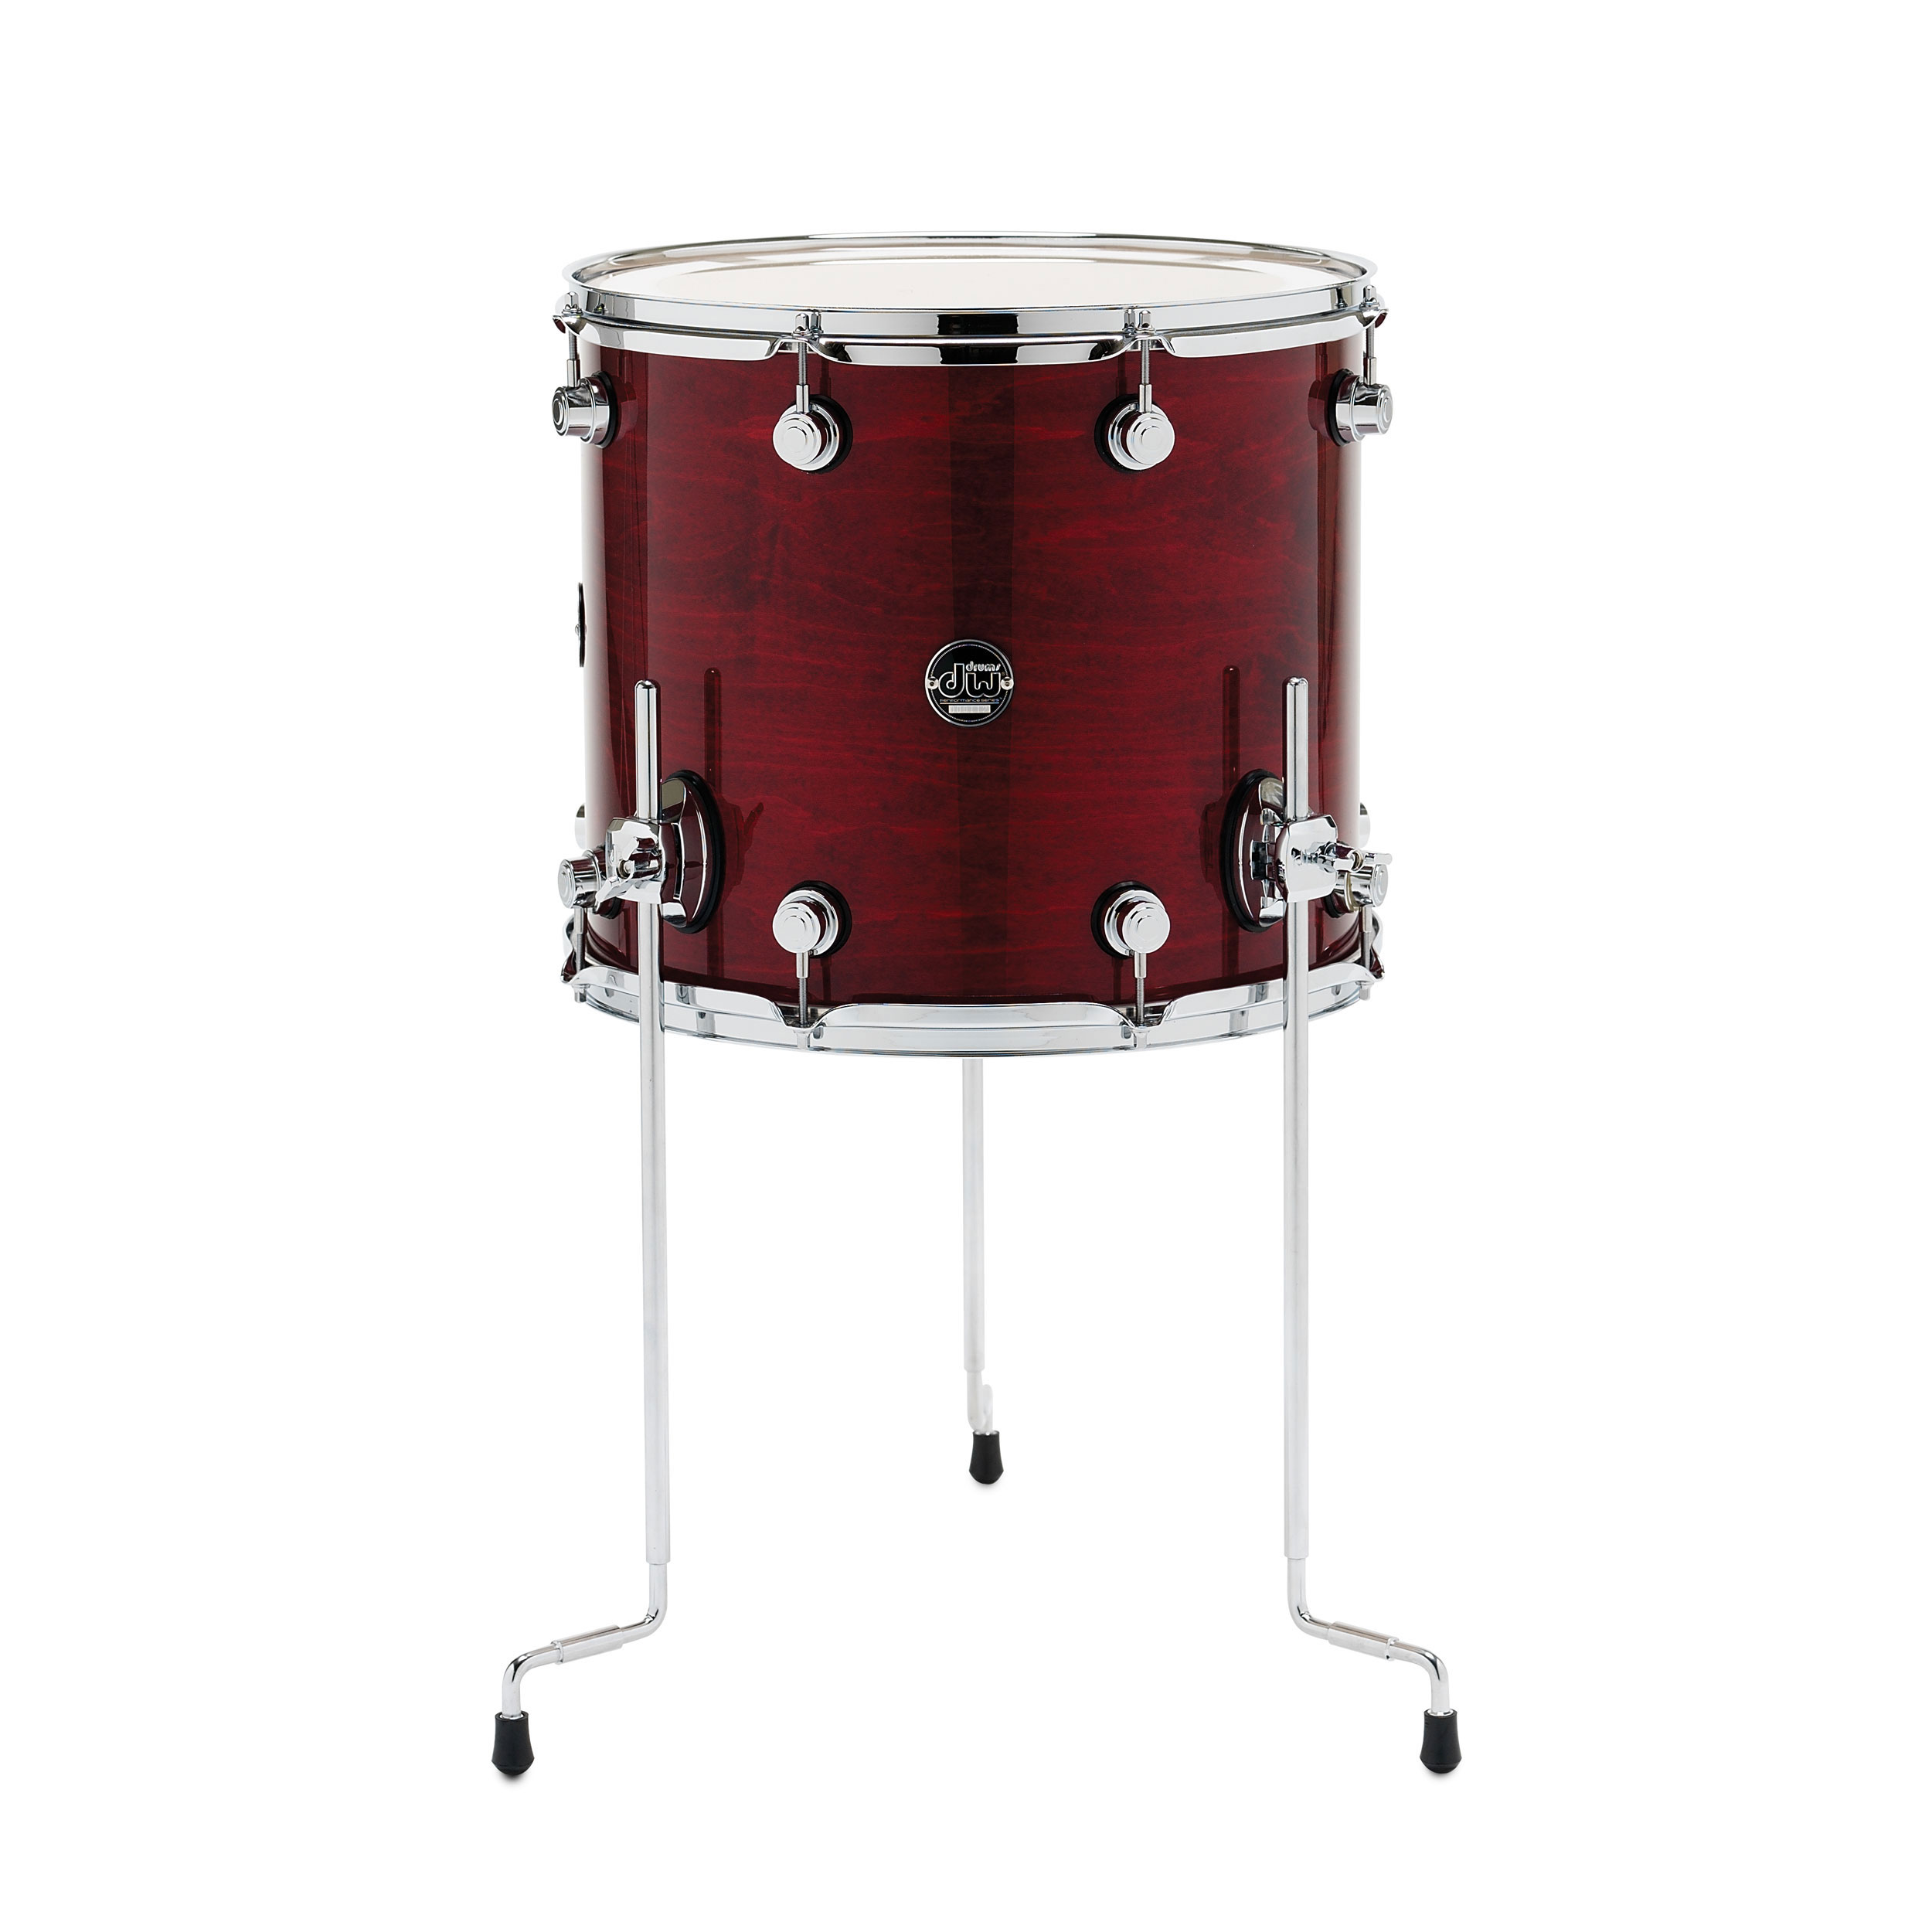 "DW Performance Series 14"" (Deep) x 16"" (Diameter) Floor Tom"